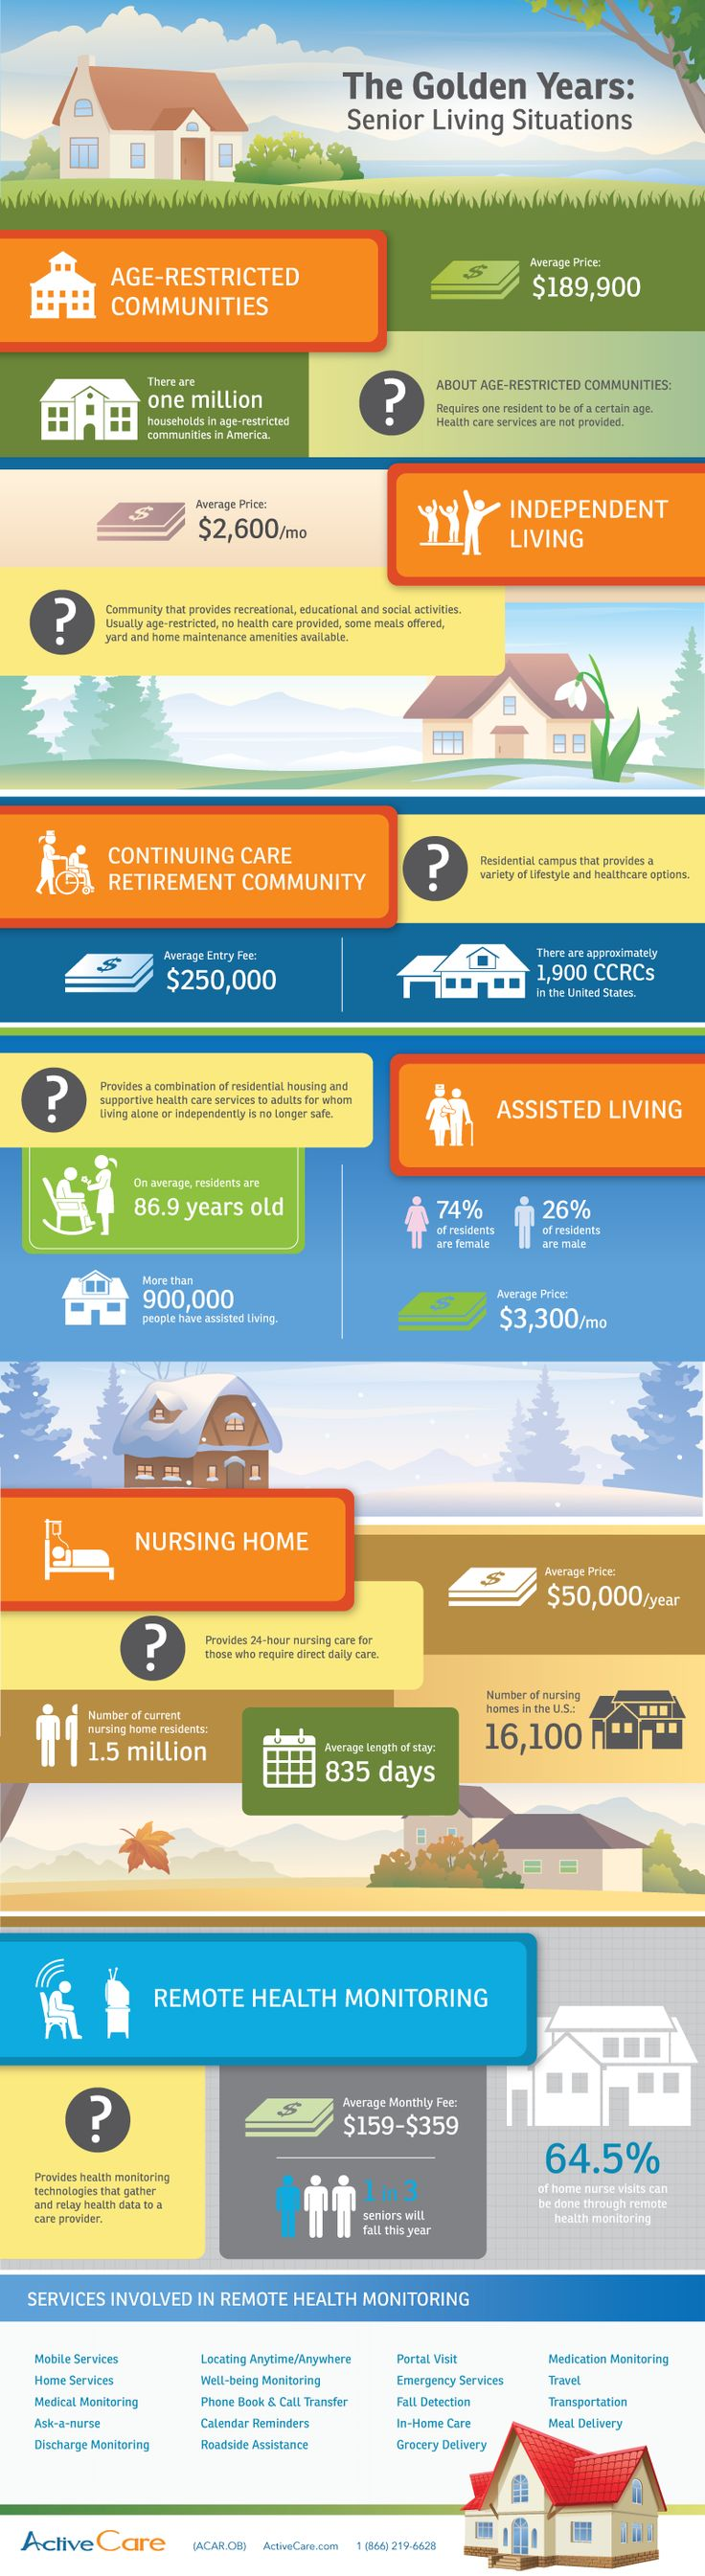 The Golden Years. Senior living situations: Concerning Seniors, Senior Living, Health Care, Healthcare Seniorliving, Infographic, Senior Care, Remote Health